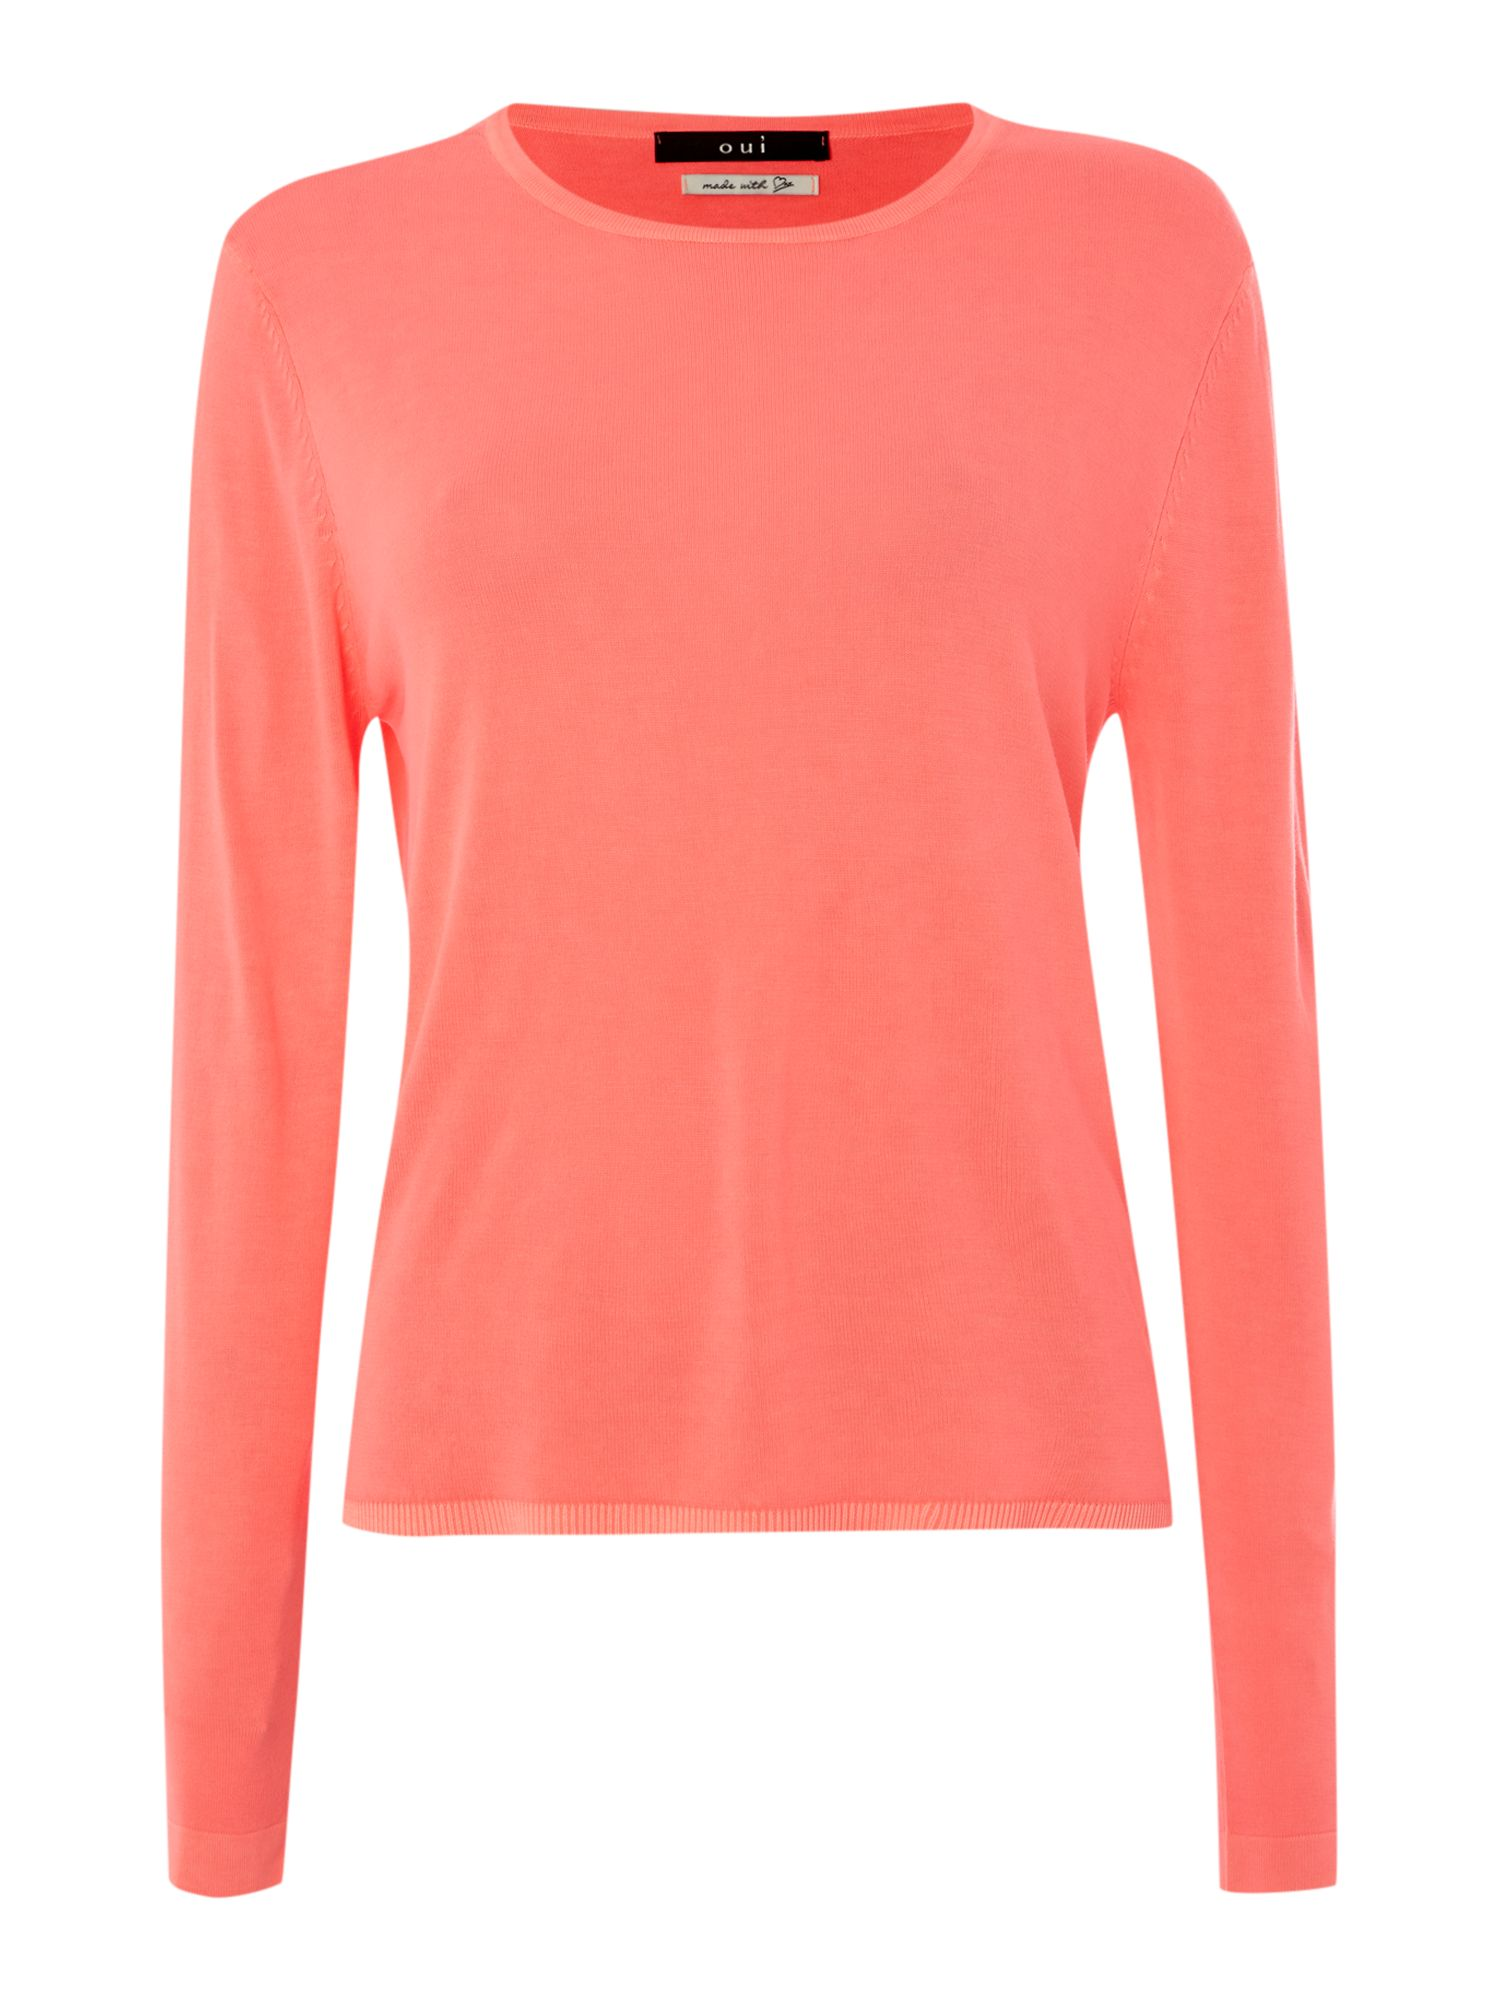 Long sleeved jersey knit